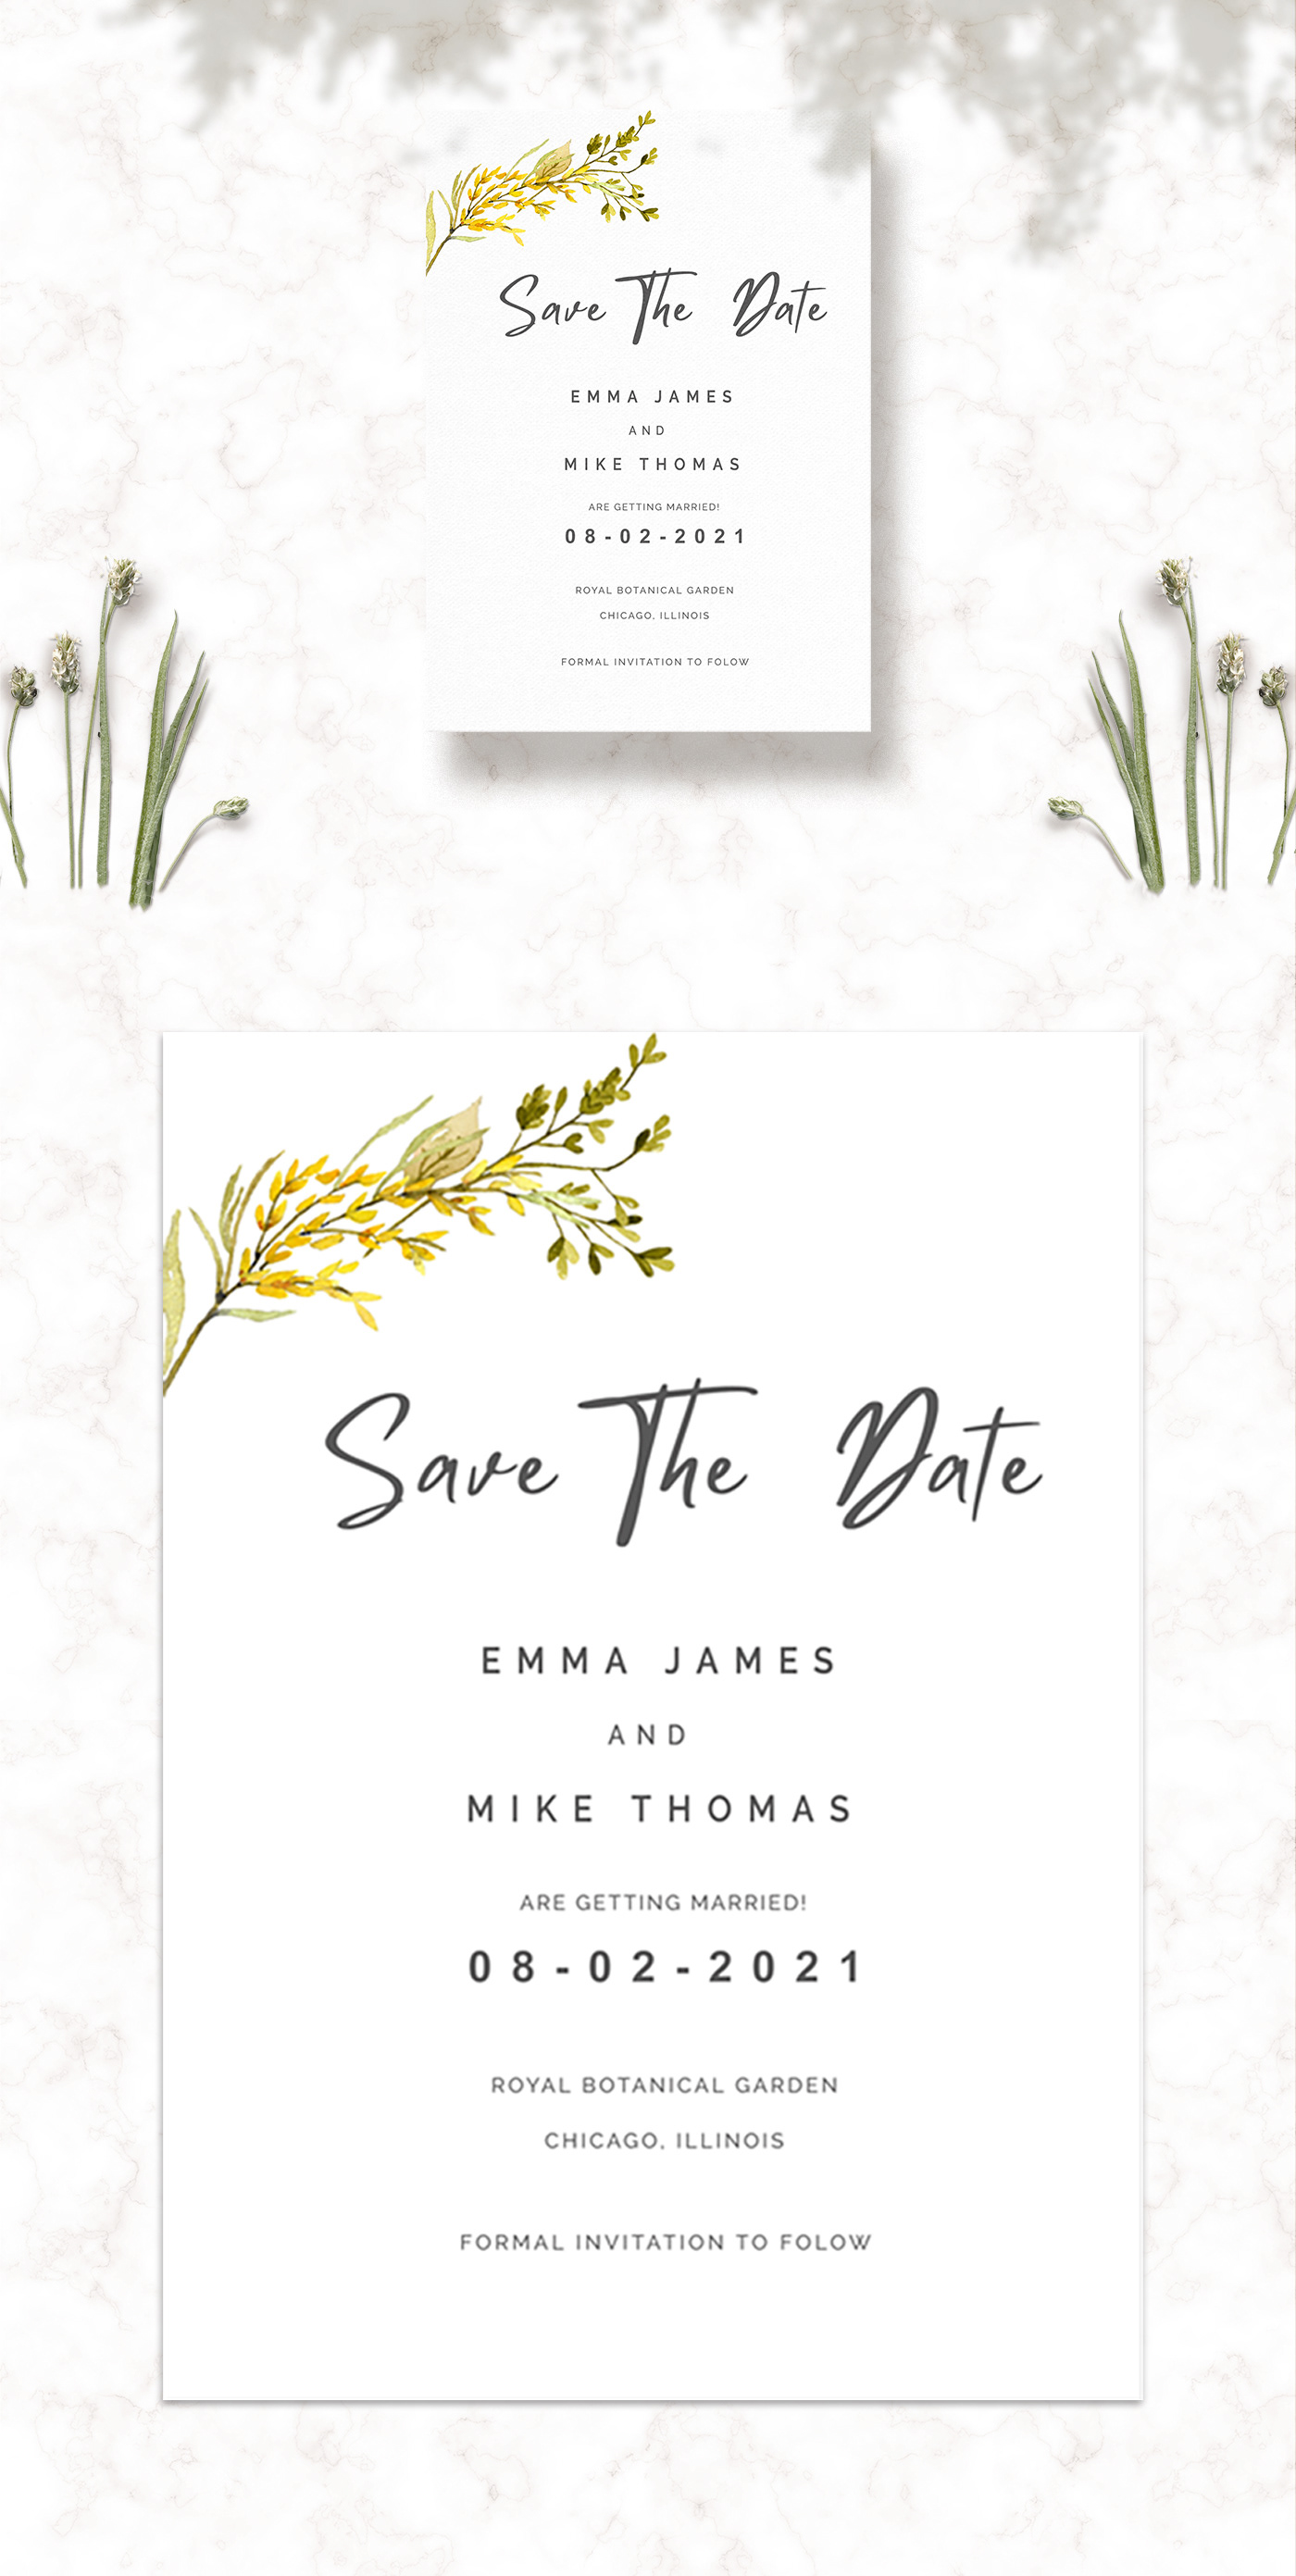 Free Save The Date Template is an eye-catching invitation for your wedding celebration.